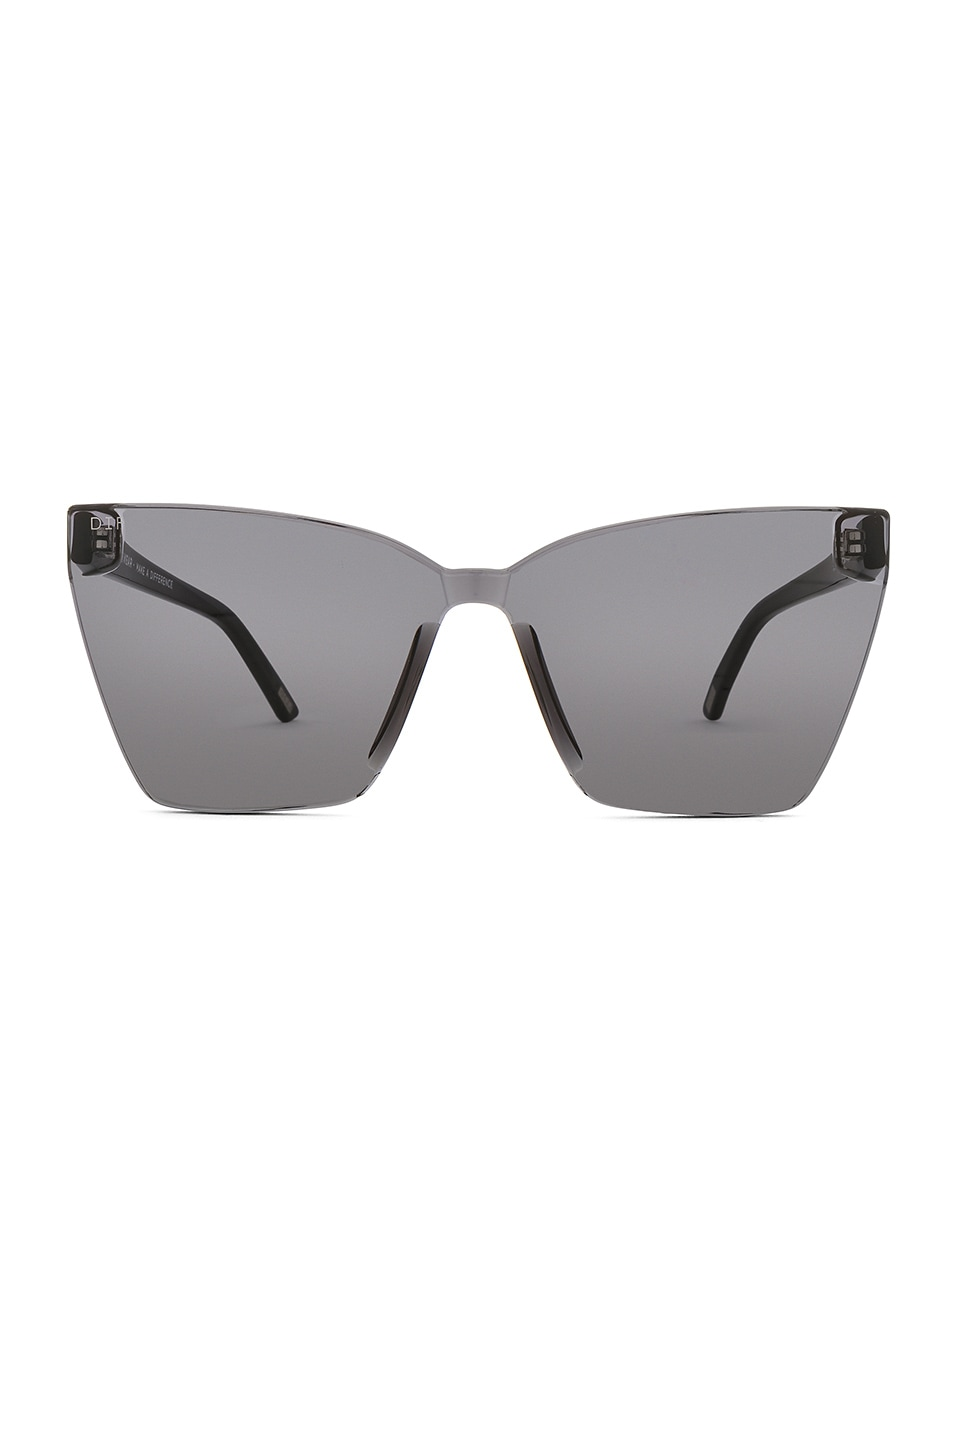 fd4913c167 DIFF EYEWEAR Goldie in Black   Dark Smoke